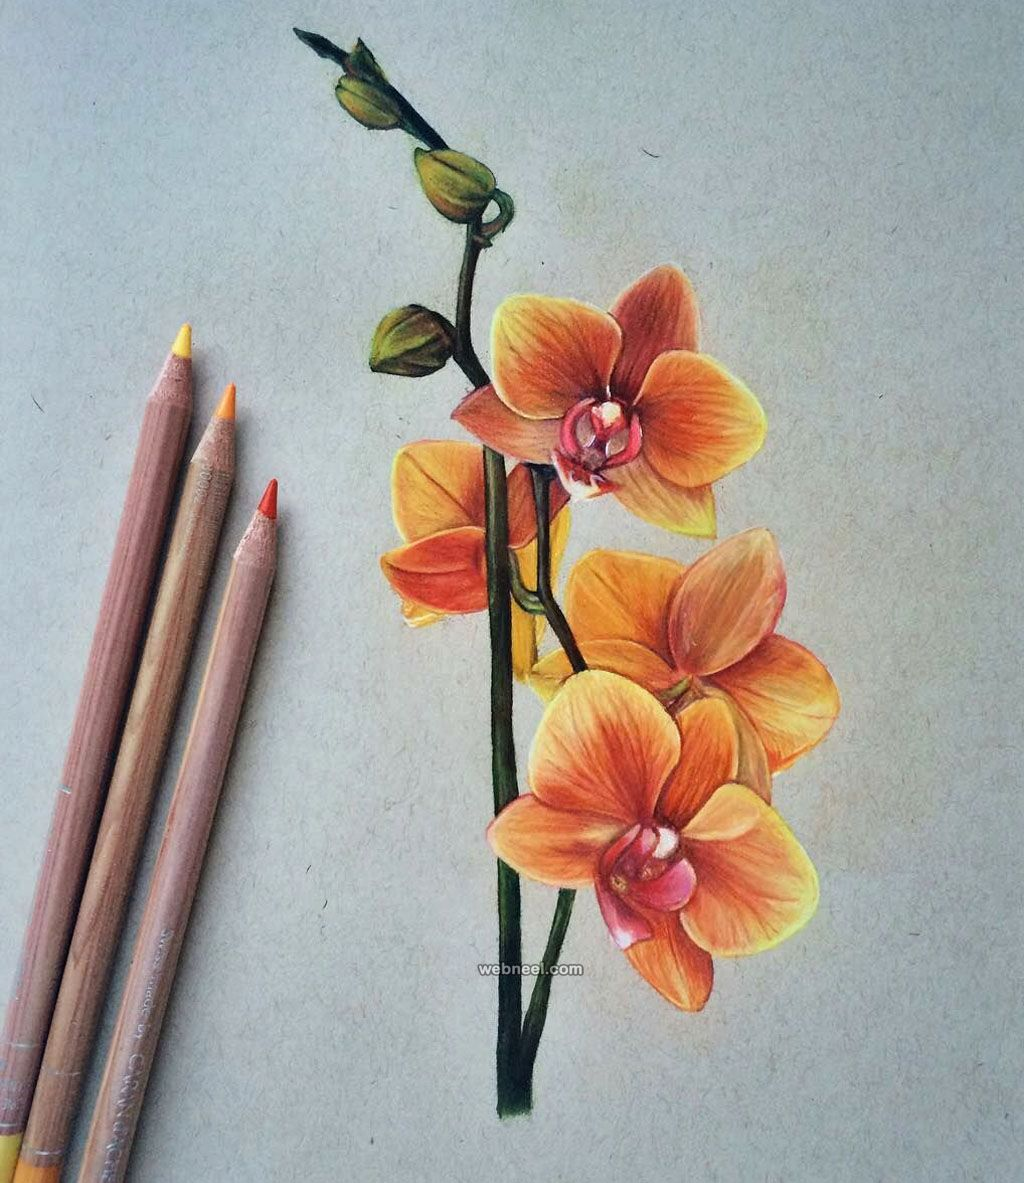 50 beautiful color pencil drawings from top artists around the world read full article